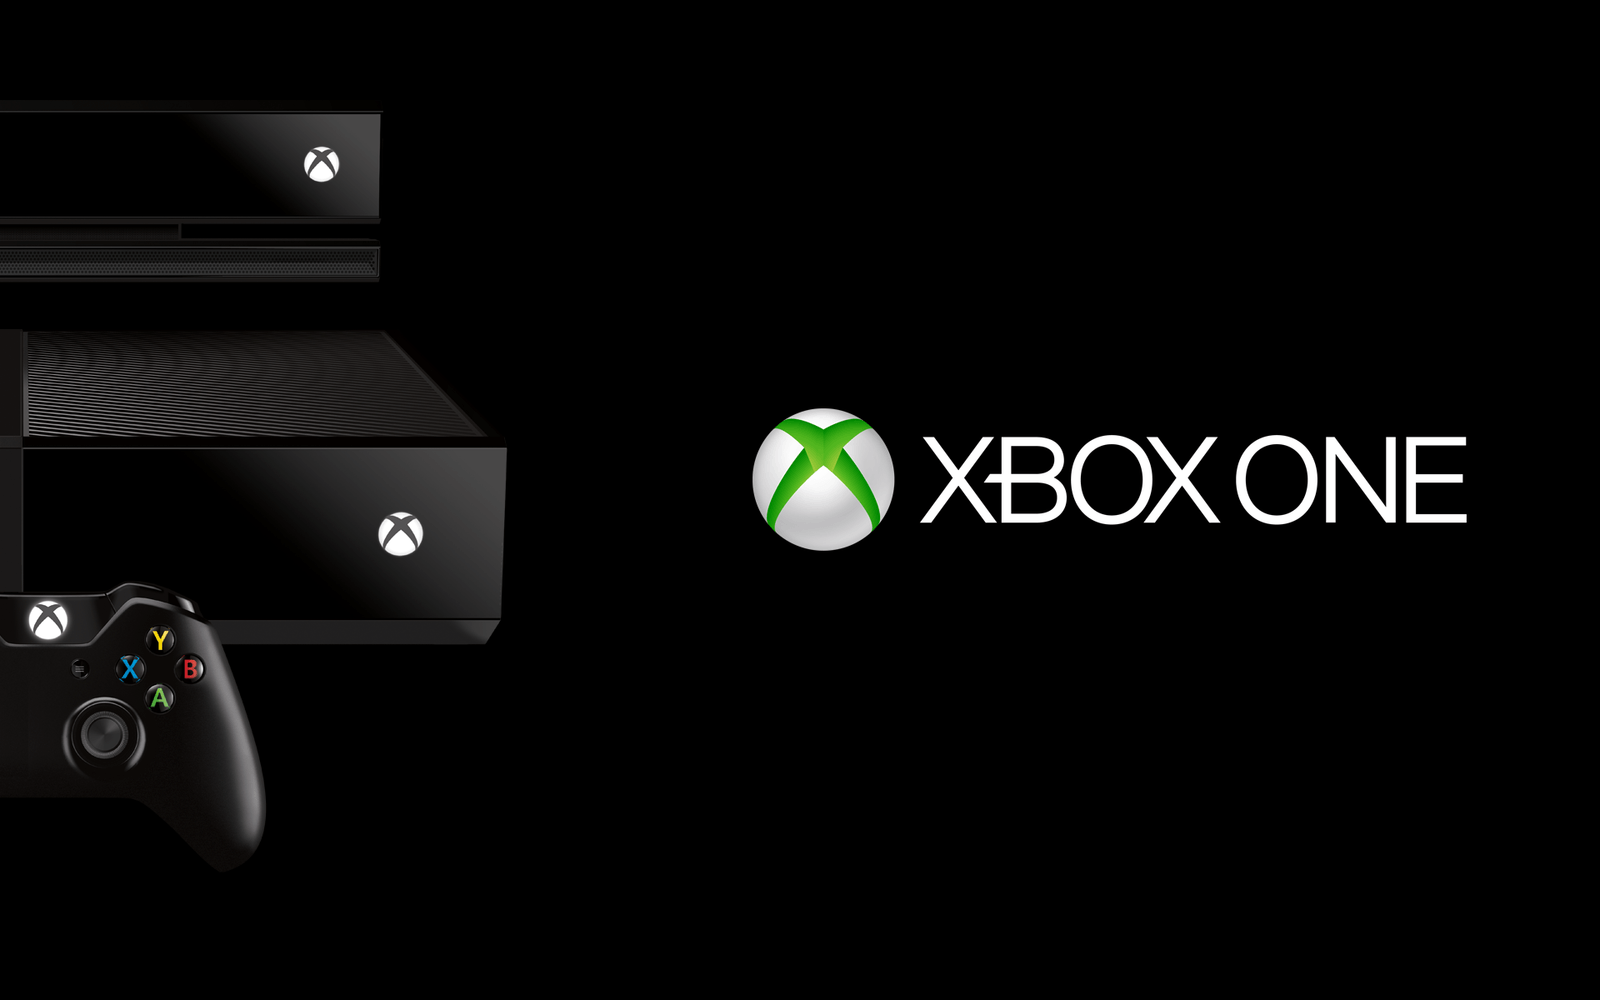 1600x1000 Show off your fandom with new Xbox One wallpapers and avatars ...